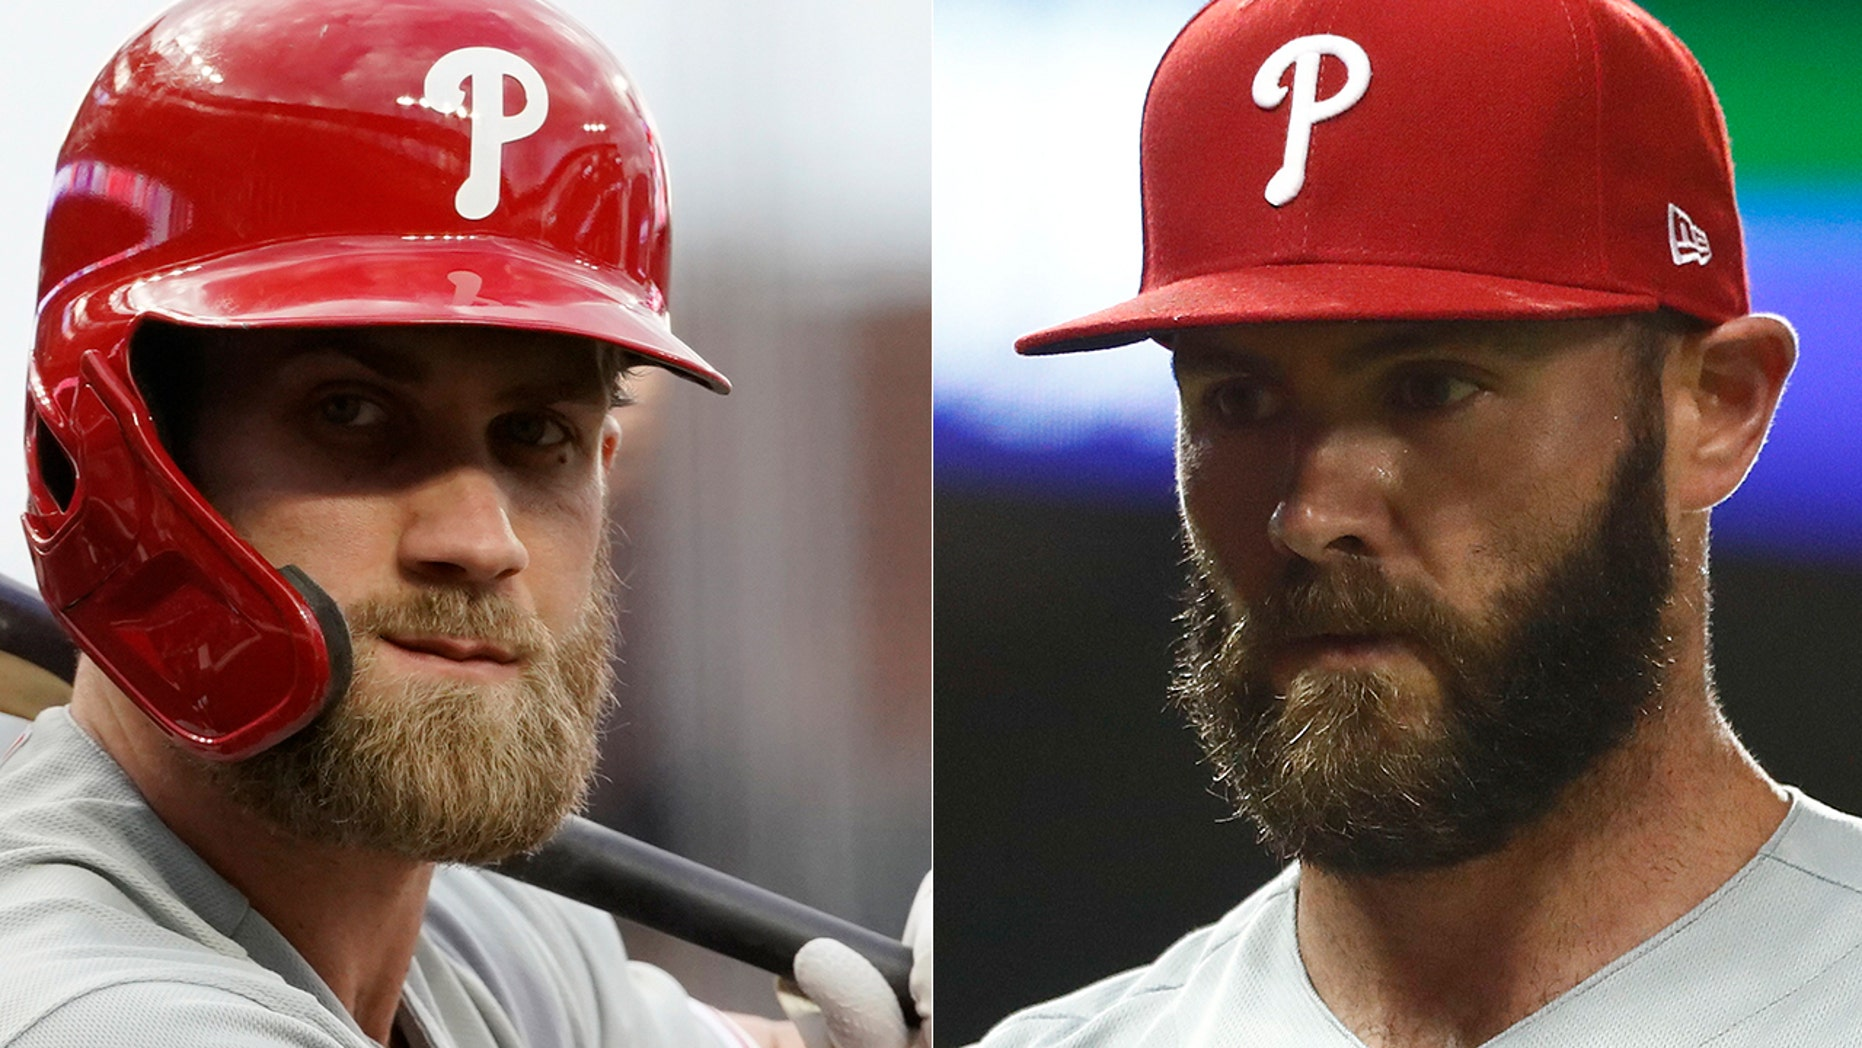 Bryce Harper was ejected from Monday's game to the dismay of Jake Arrieta.